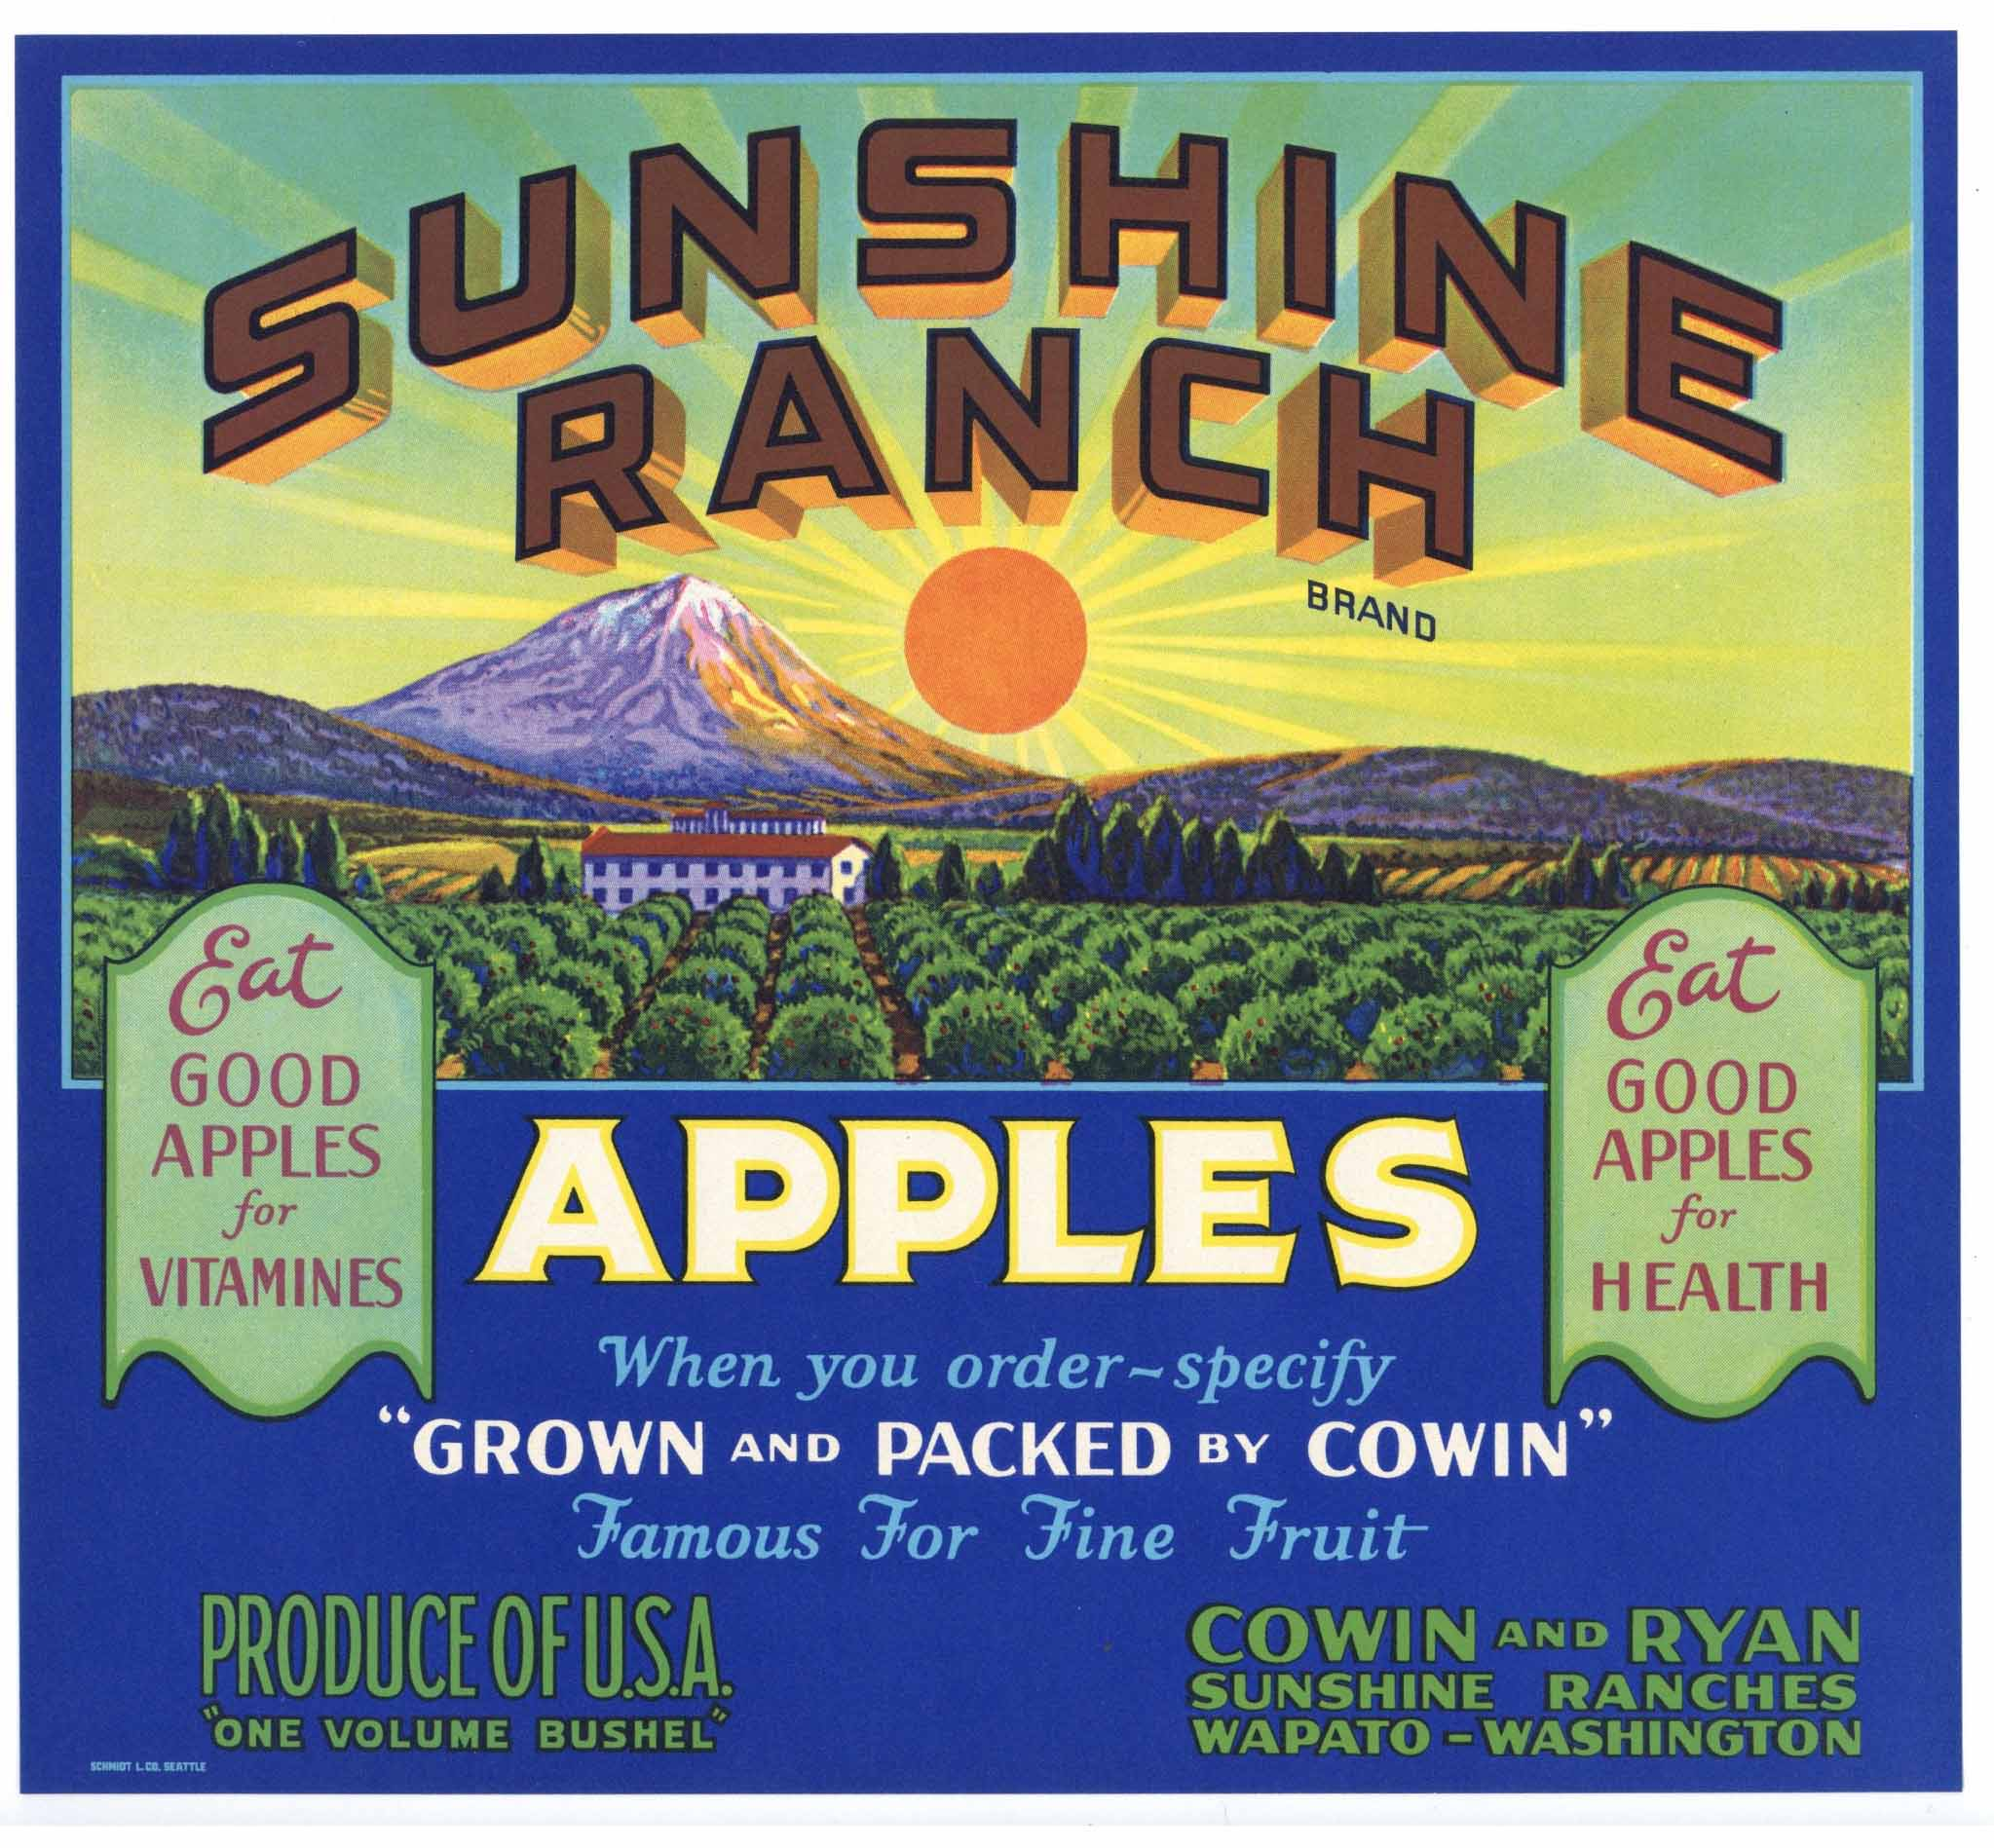 Sunshine Ranch Brand Vintage Wapato Washington Apple Crate Label